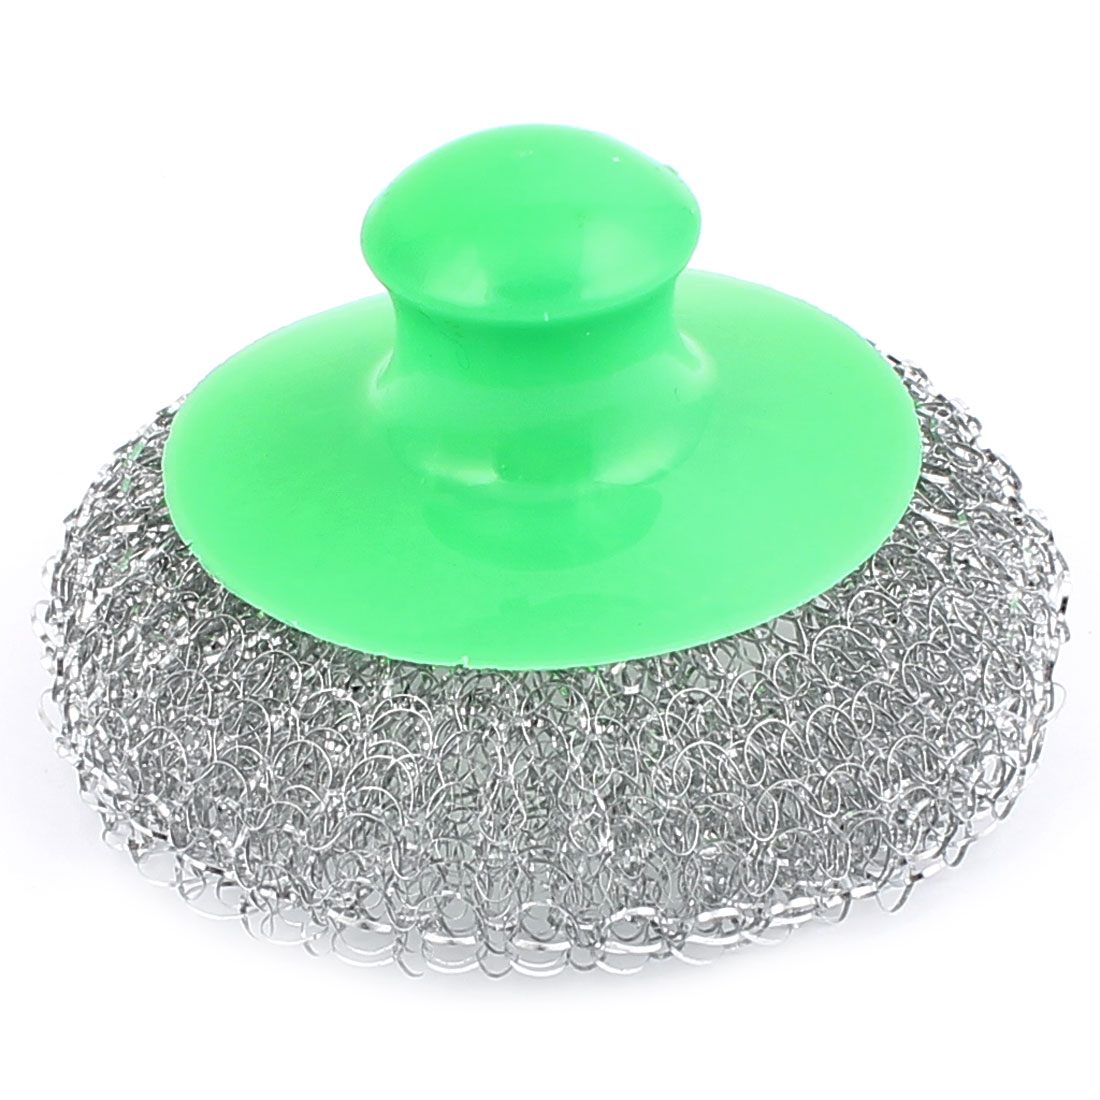 Kitchen Pot Pan Dish Bowel Steel Wire Scouring Pad Scrubber Cleaning Brush Cleaner Green